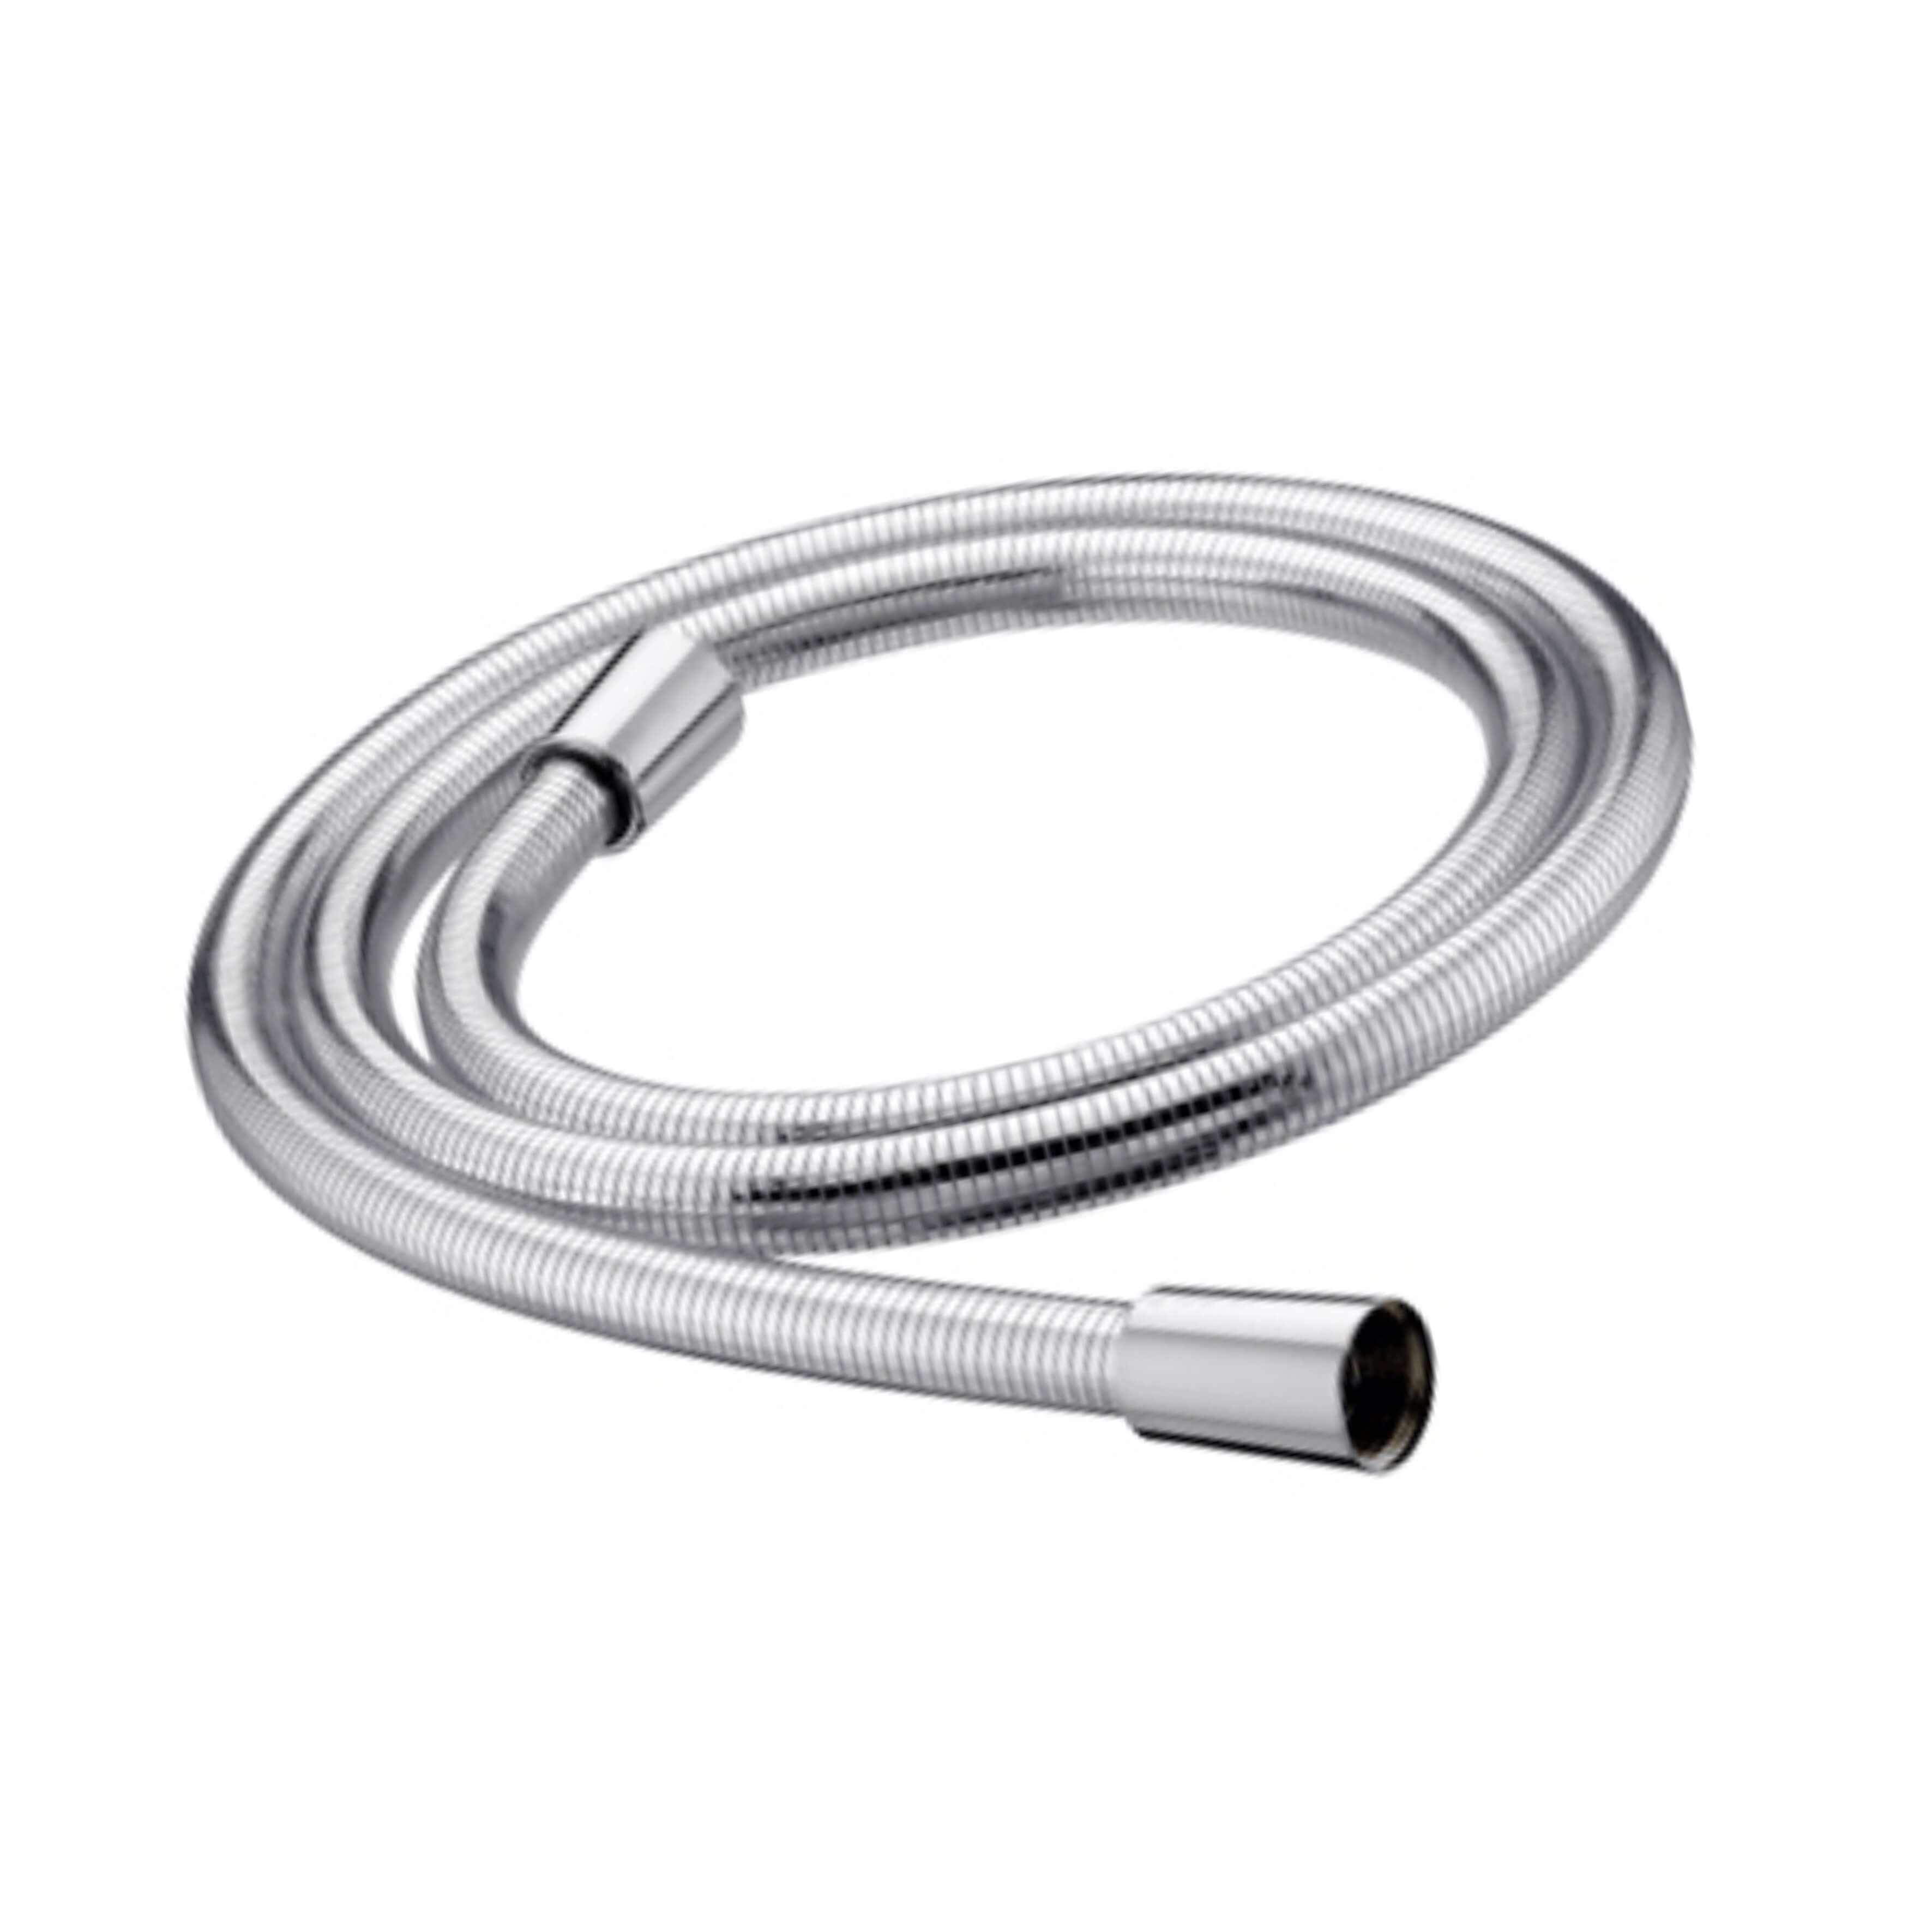 Aqualisa Shower Hose Chrome 910189